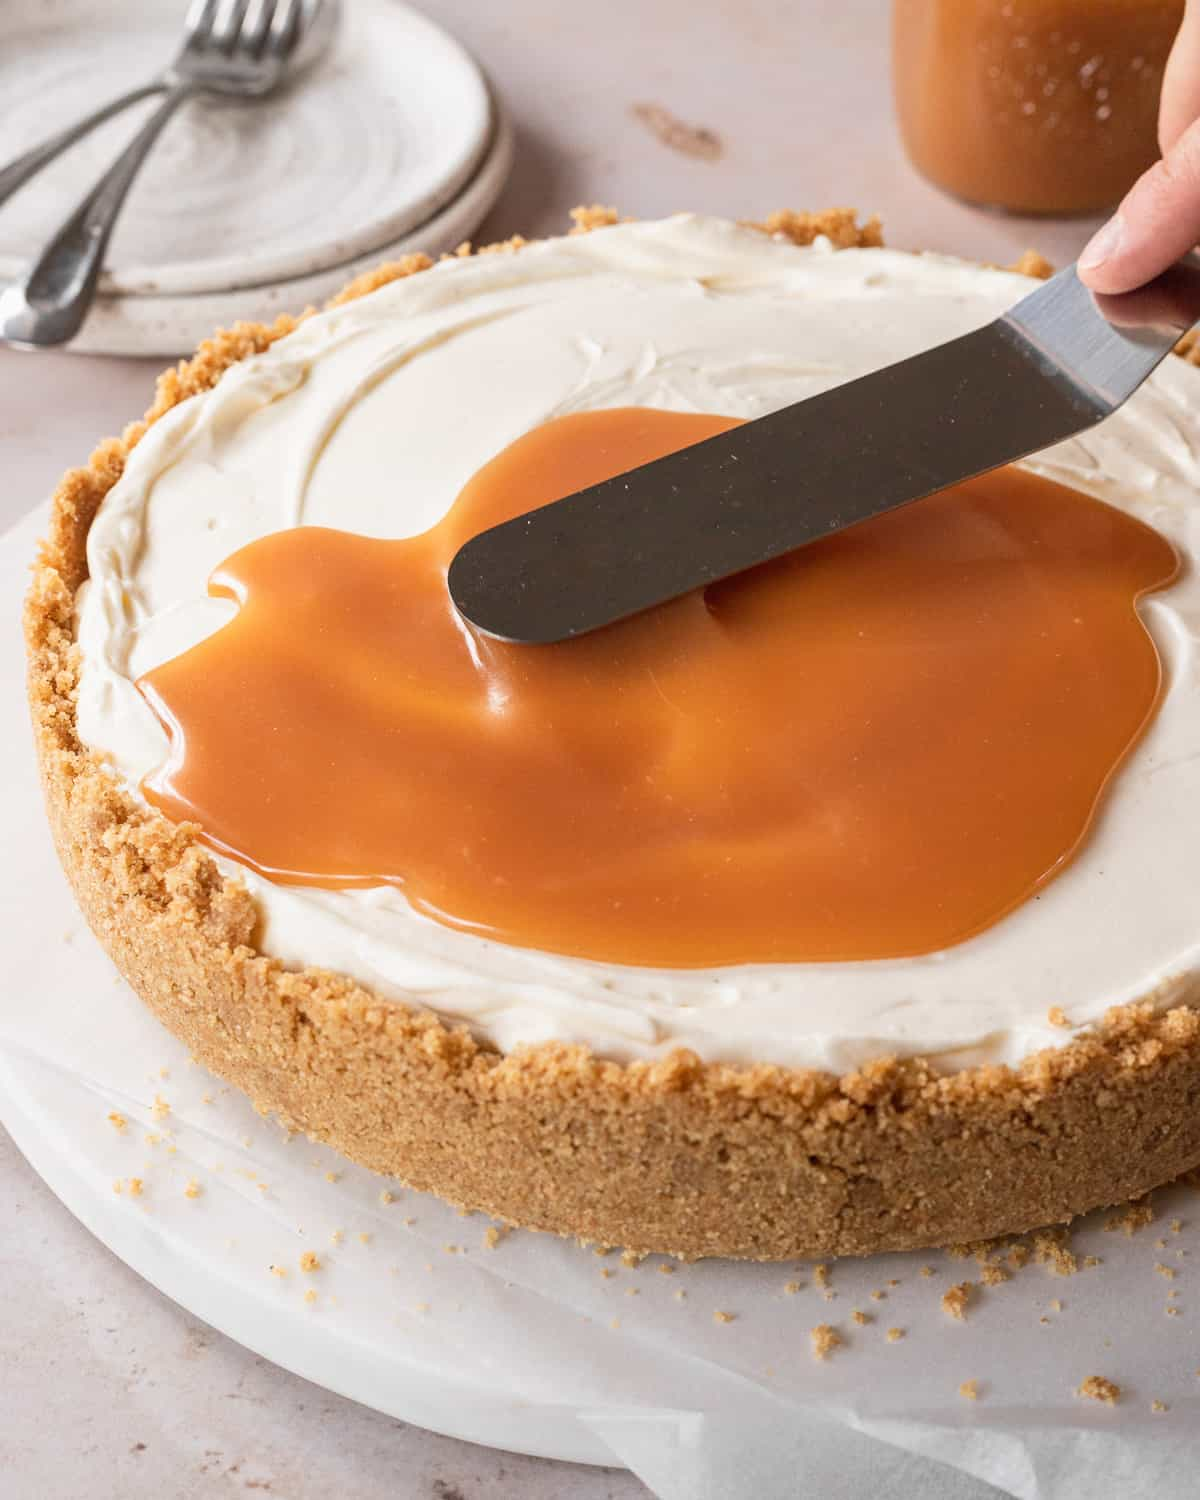 spreading the caramel sauce over top the cheesecake using an offset spatula